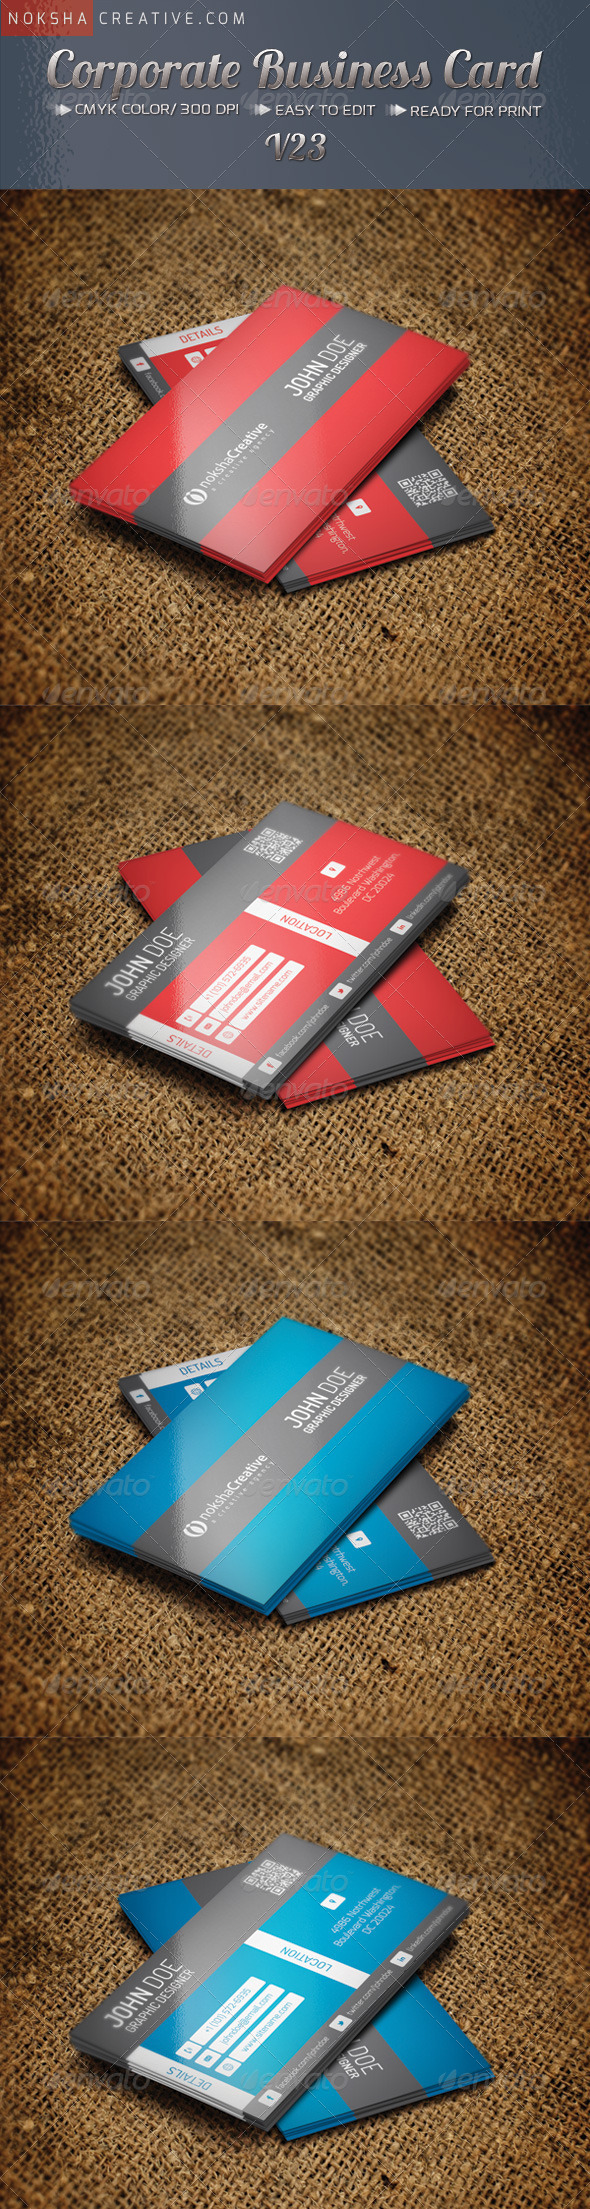 GraphicRiver Corporate Business Card v-23 5068479